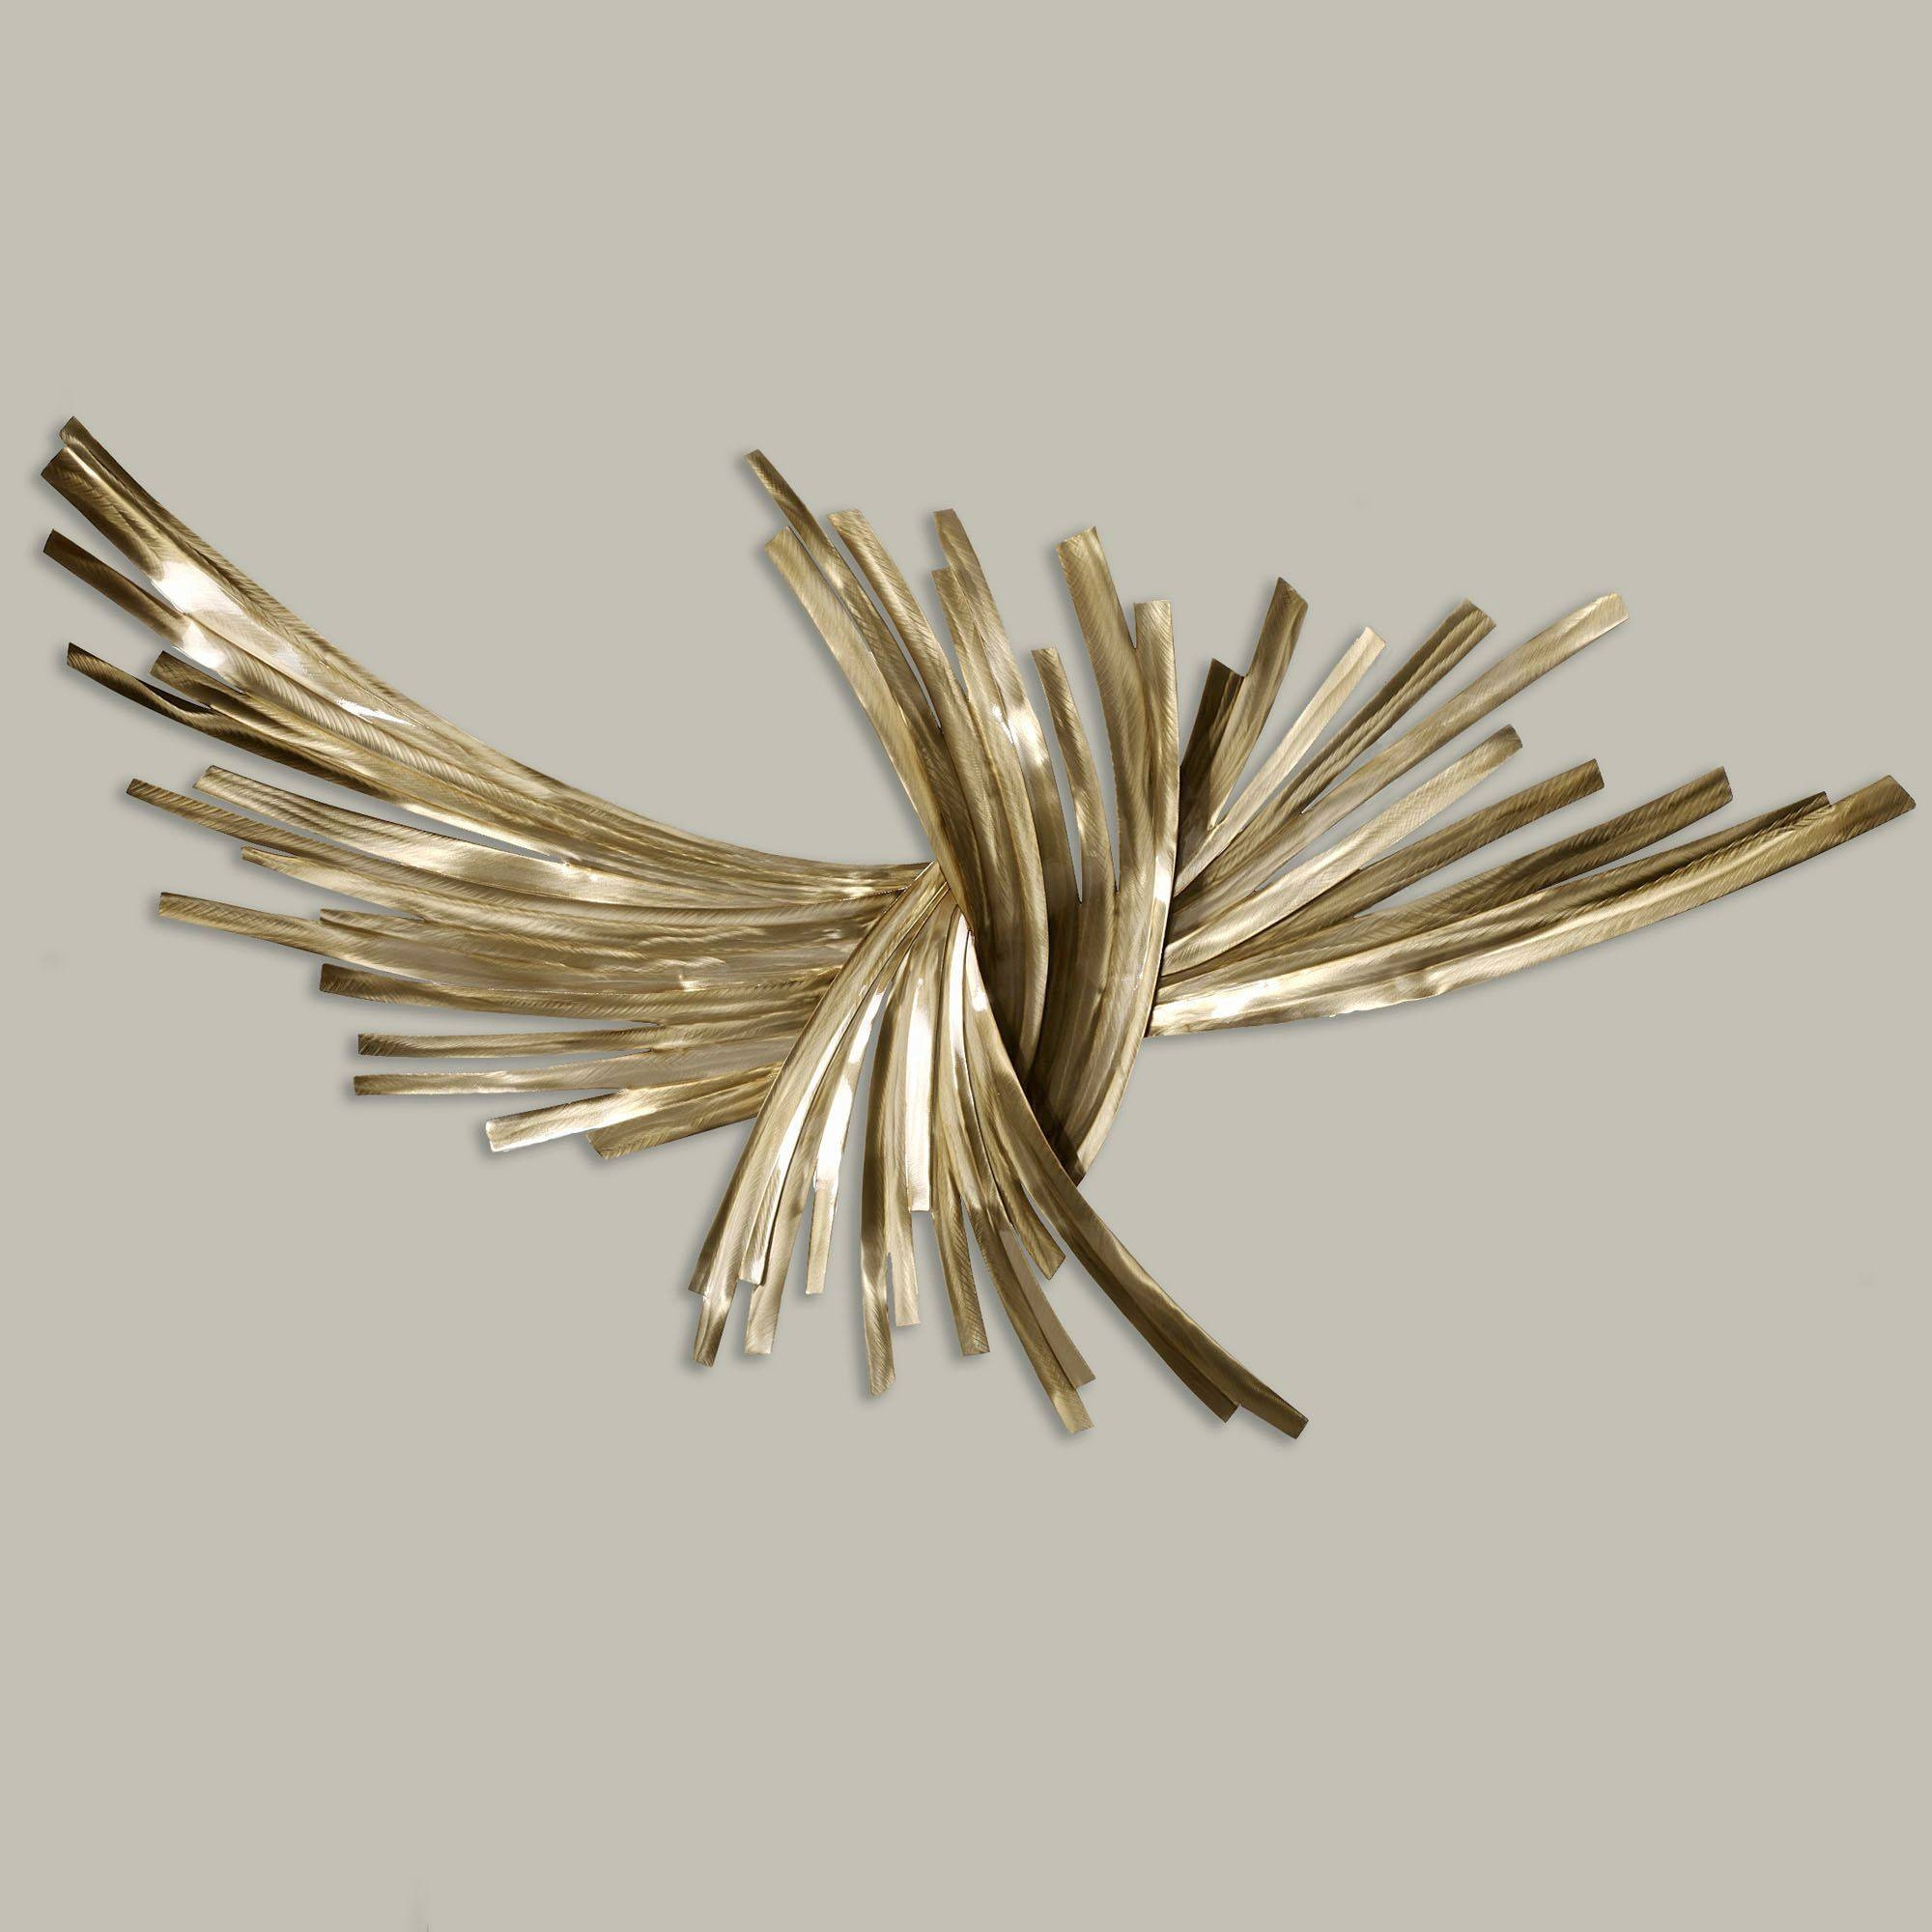 Contemporary Metal Wall Art Sculptures | Touch Of Class Regarding Recent Jeweled Metal Wall Art (View 4 of 20)